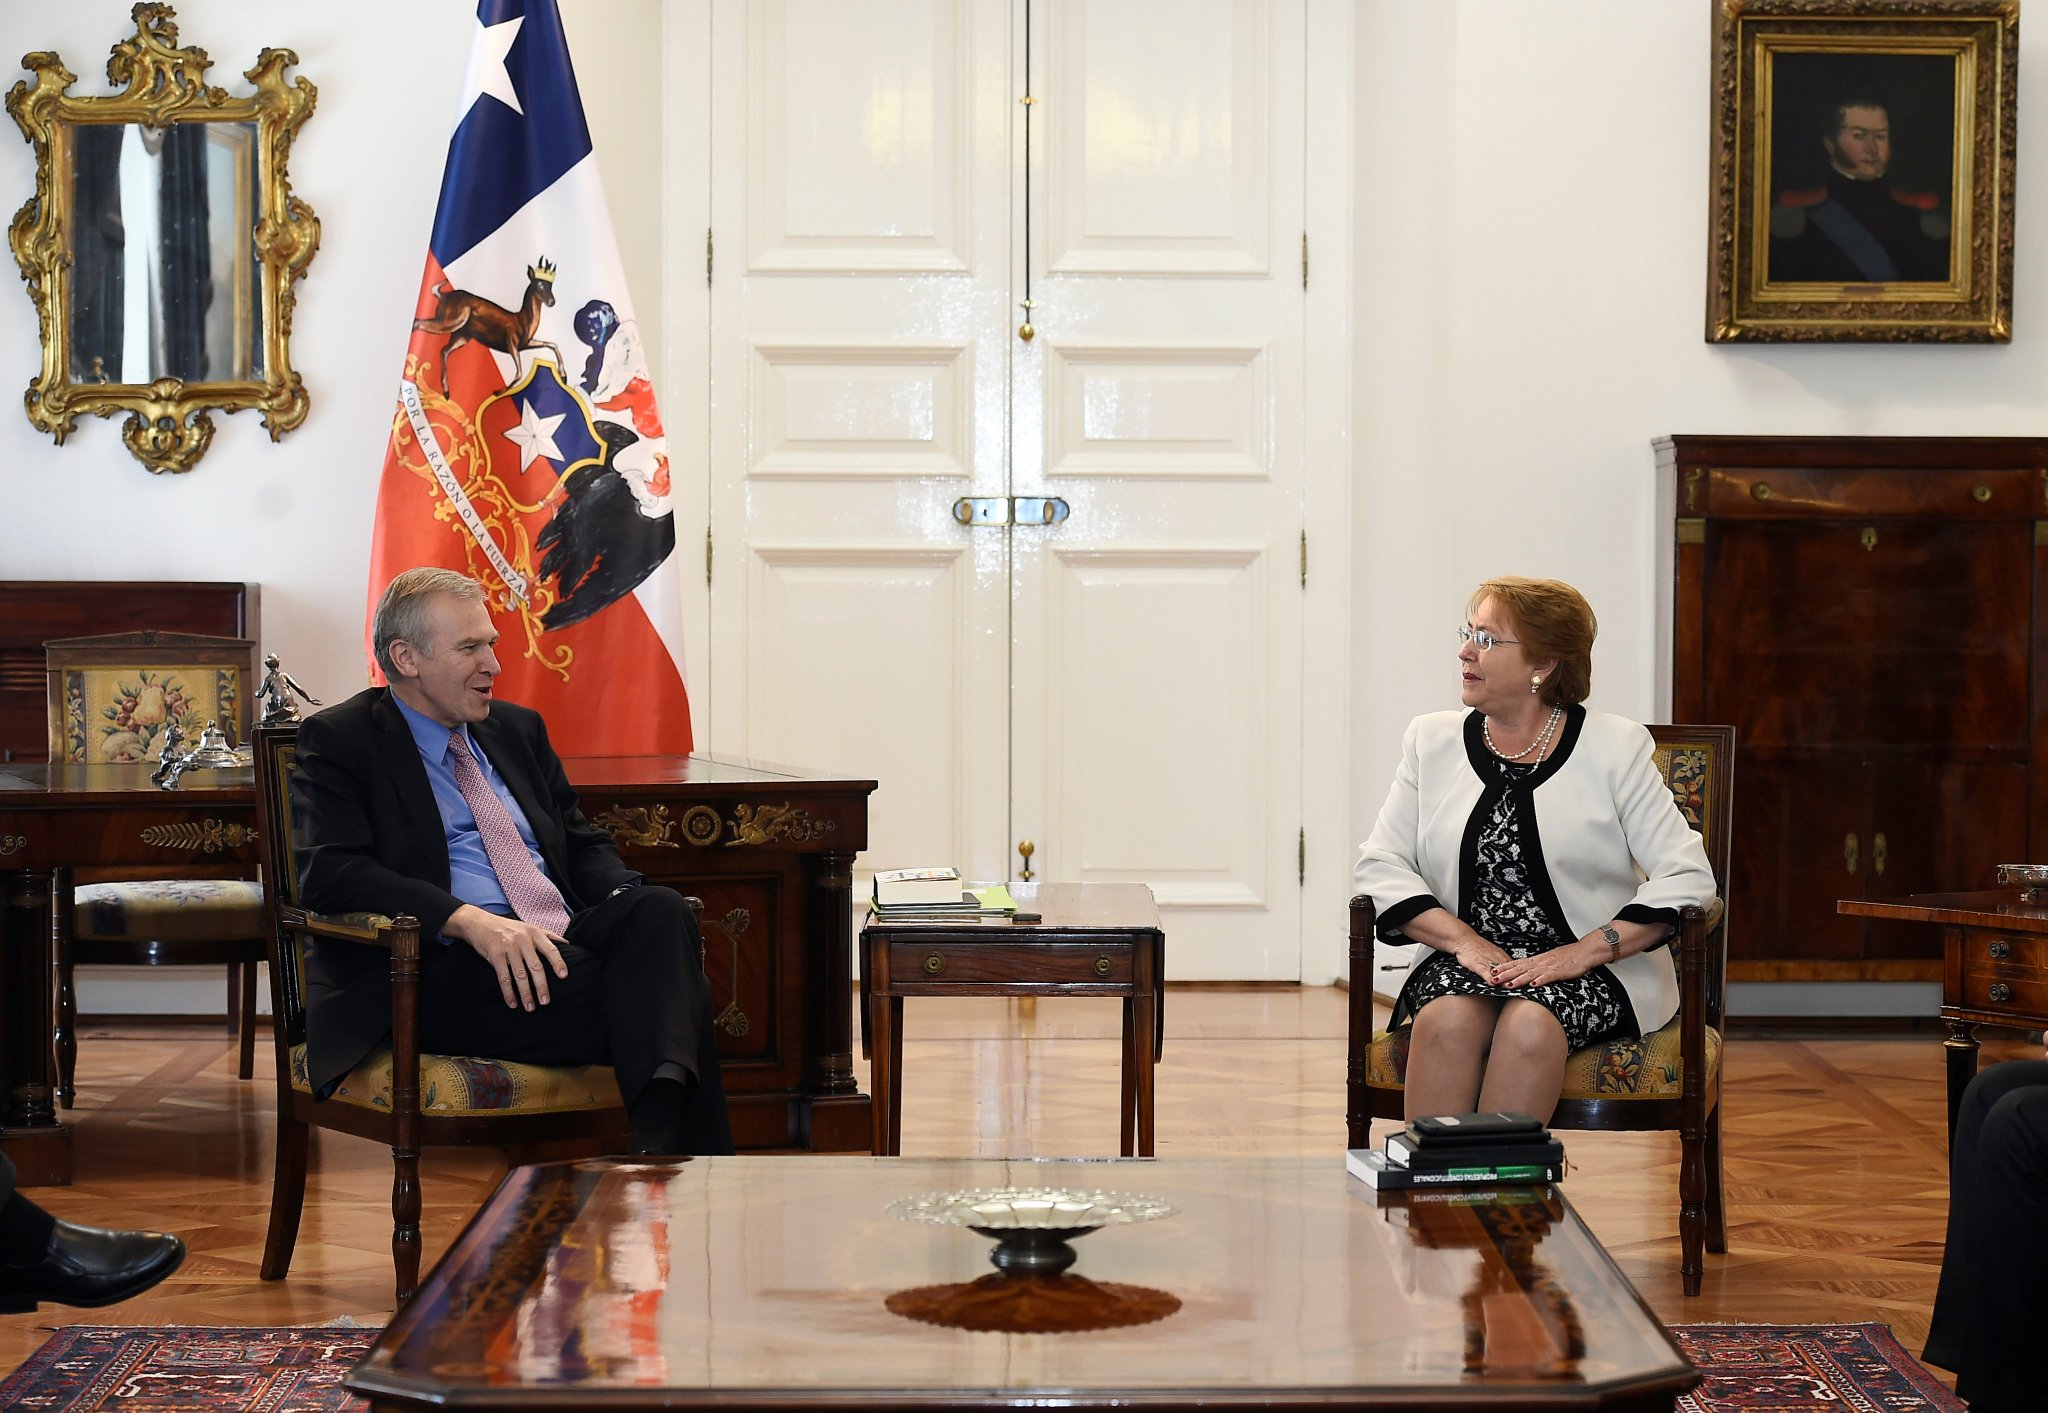 International IDEA's Secretary-General Yves Leterme is received by the President of Chile Michelle Bachelet